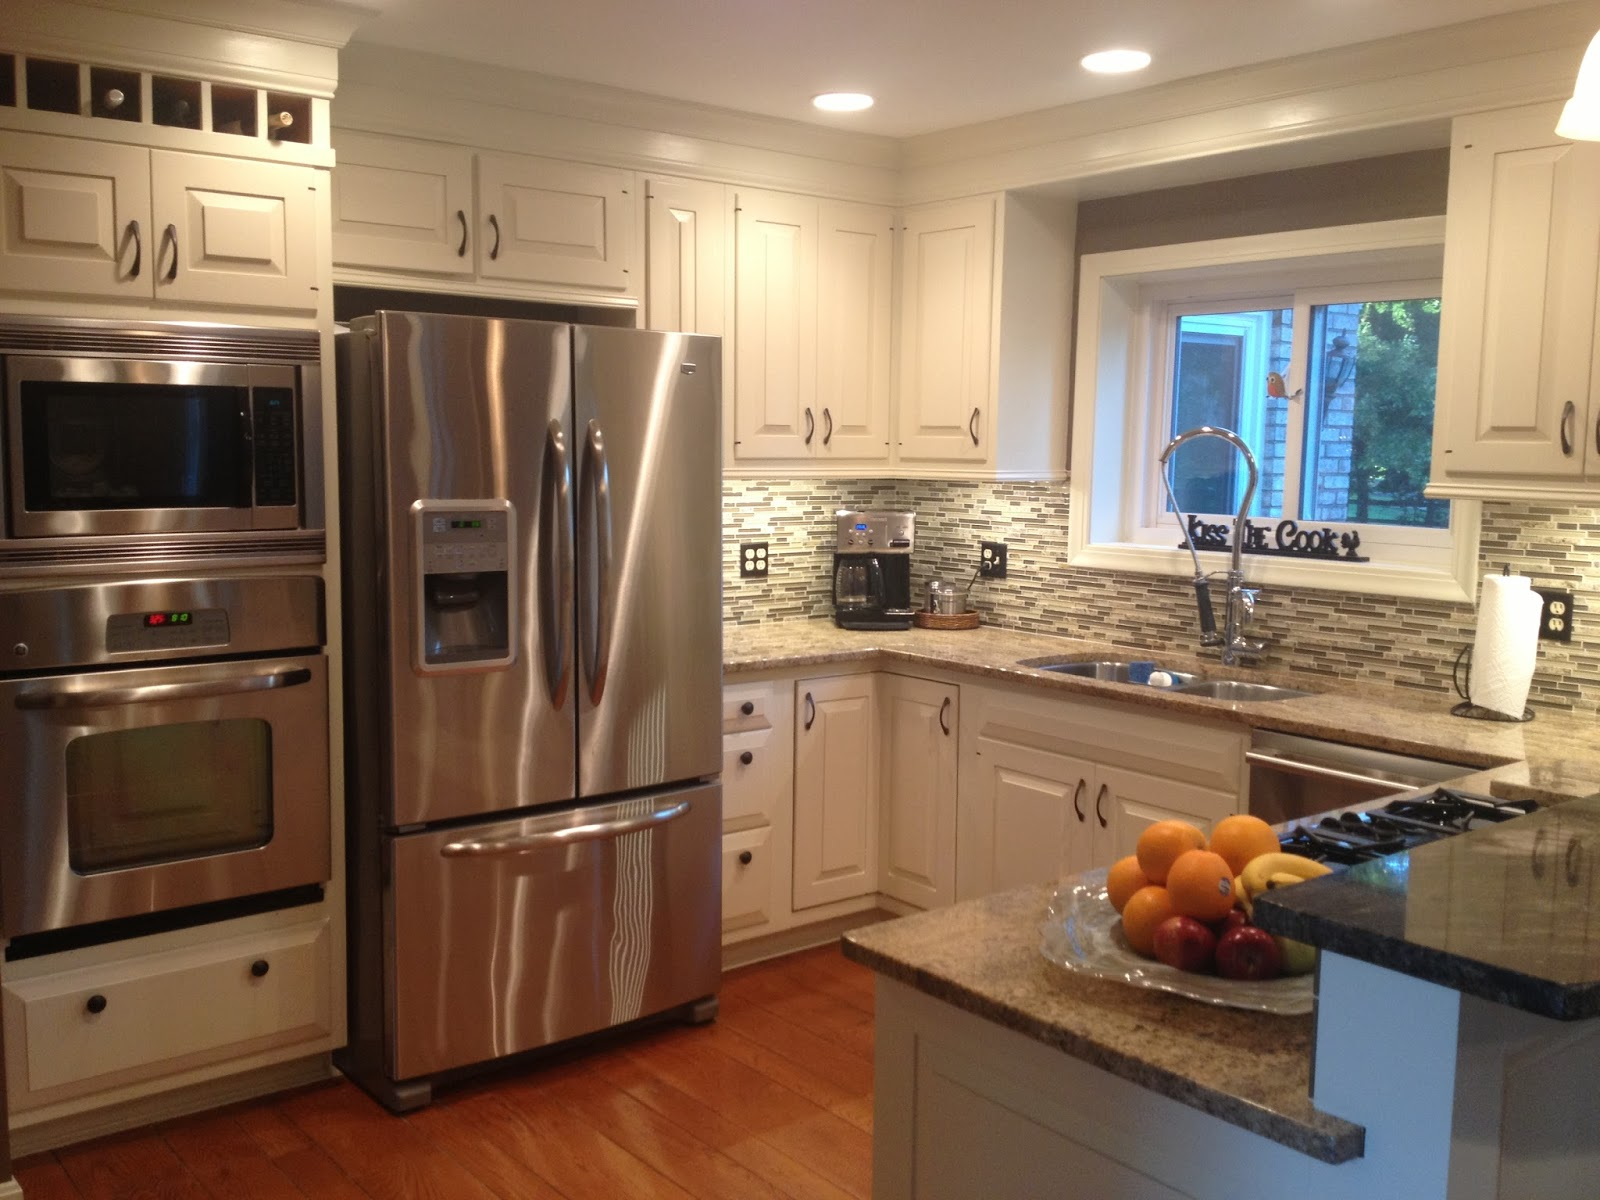 Four seasons style the new kitchen remodel on a budget for Kitchen renovation styles